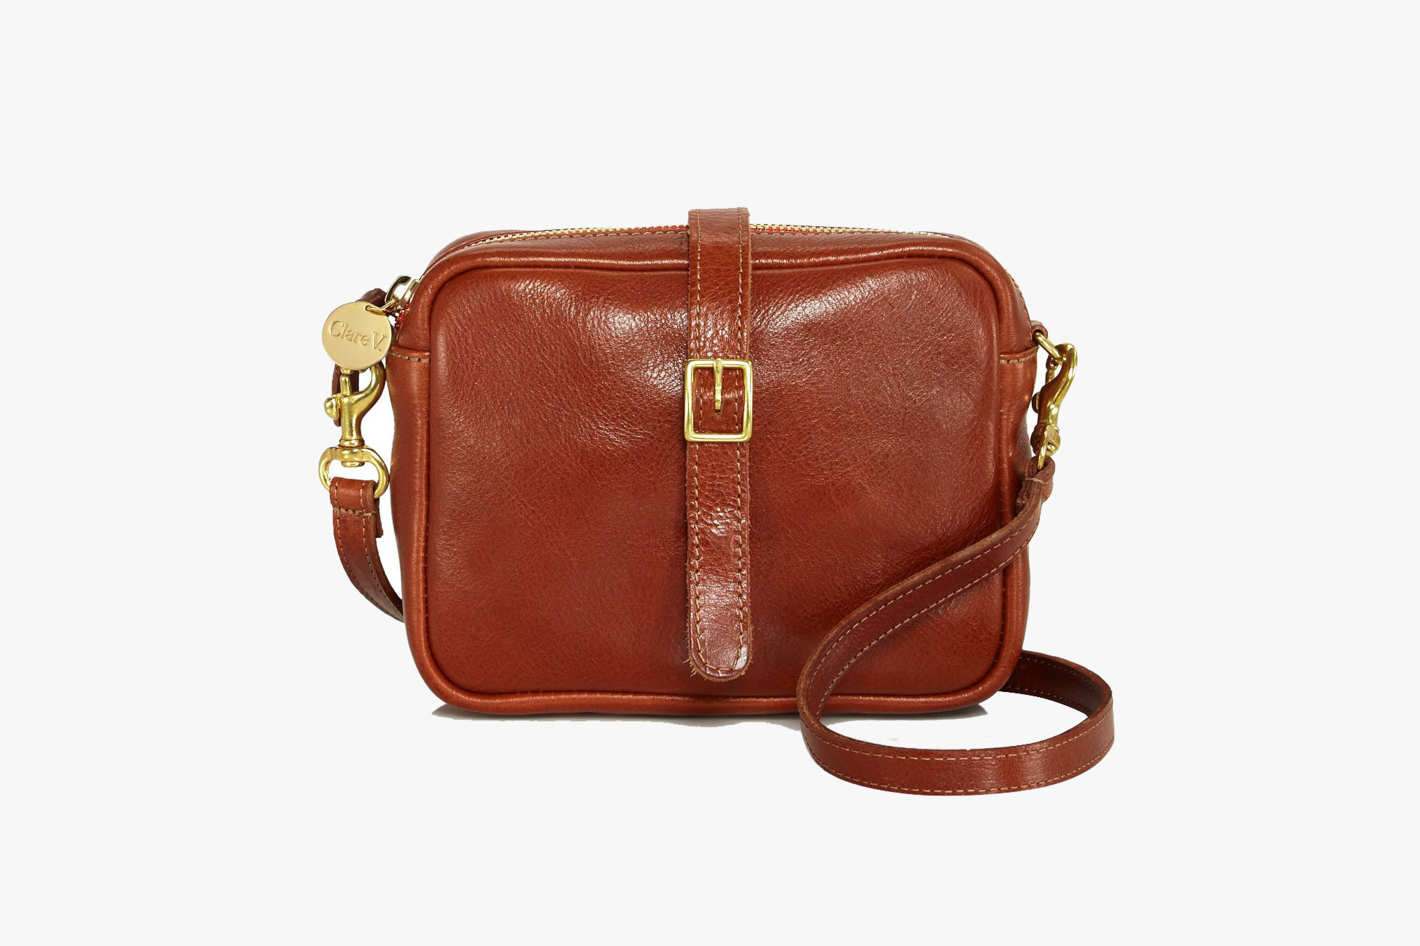 Clare V. x Kodak Sac de Camera Leather Crossbody Bag